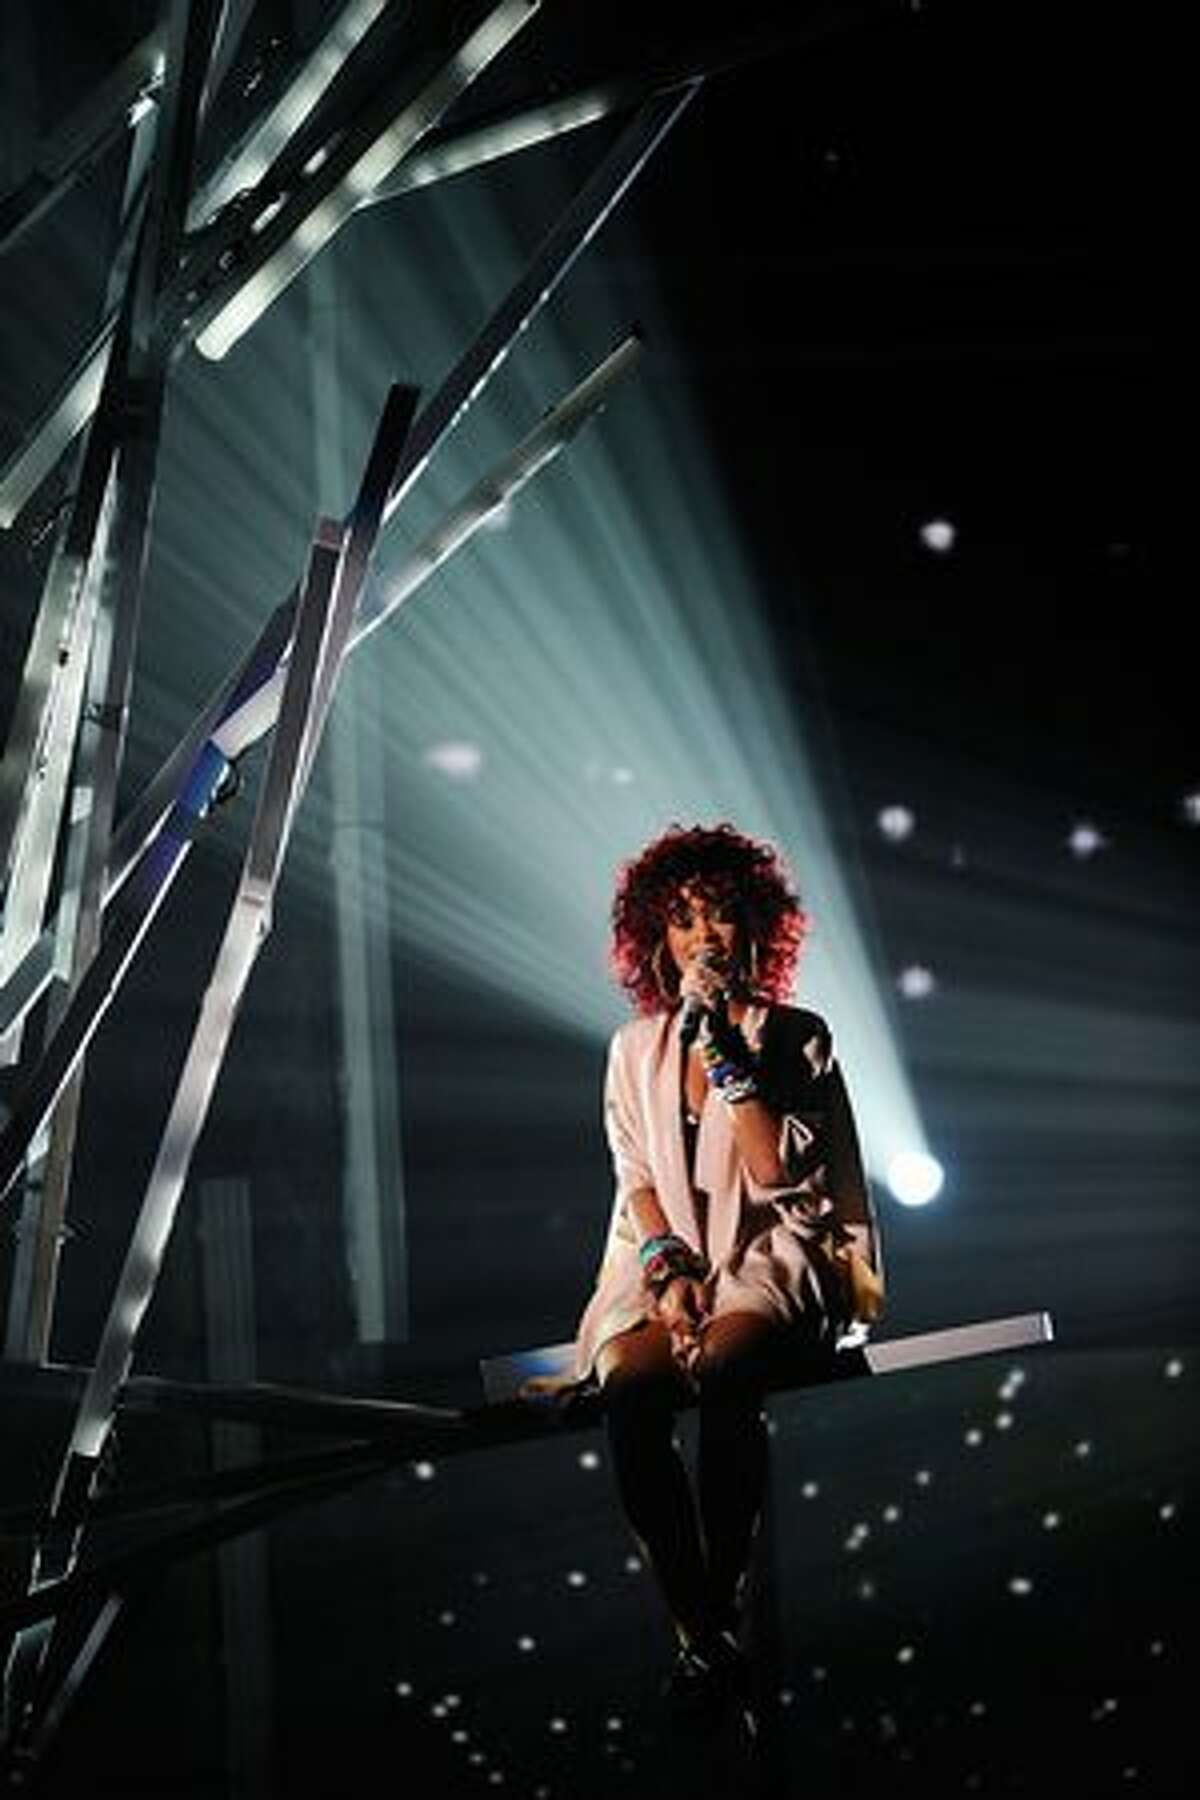 Singer Rihanna performs onstage during the 2010 American Music Awards held at Nokia Theatre L.A. Live in Los Angeles.